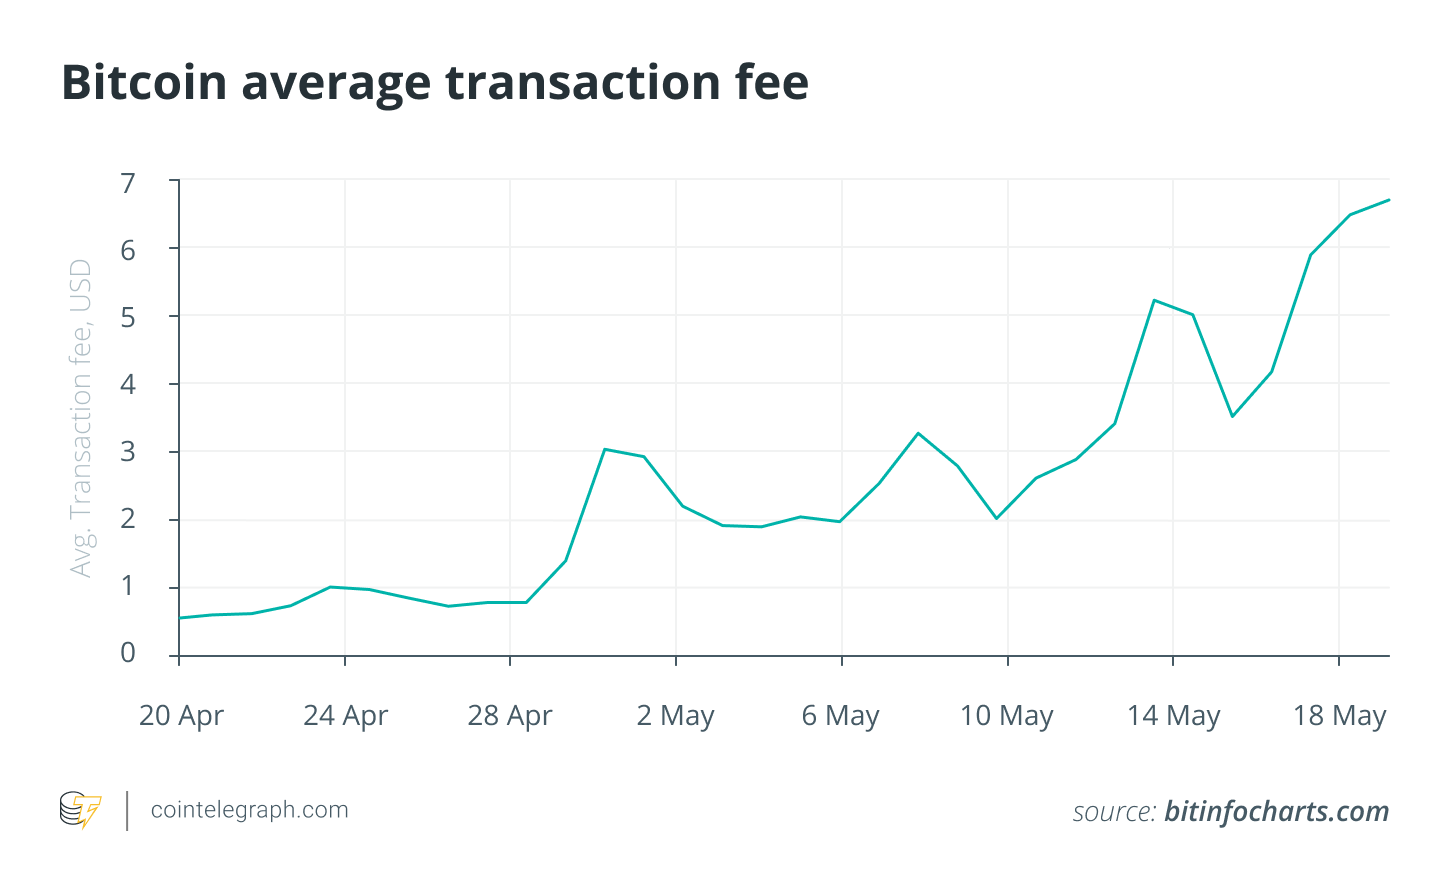 Bitcoin average transaction fee